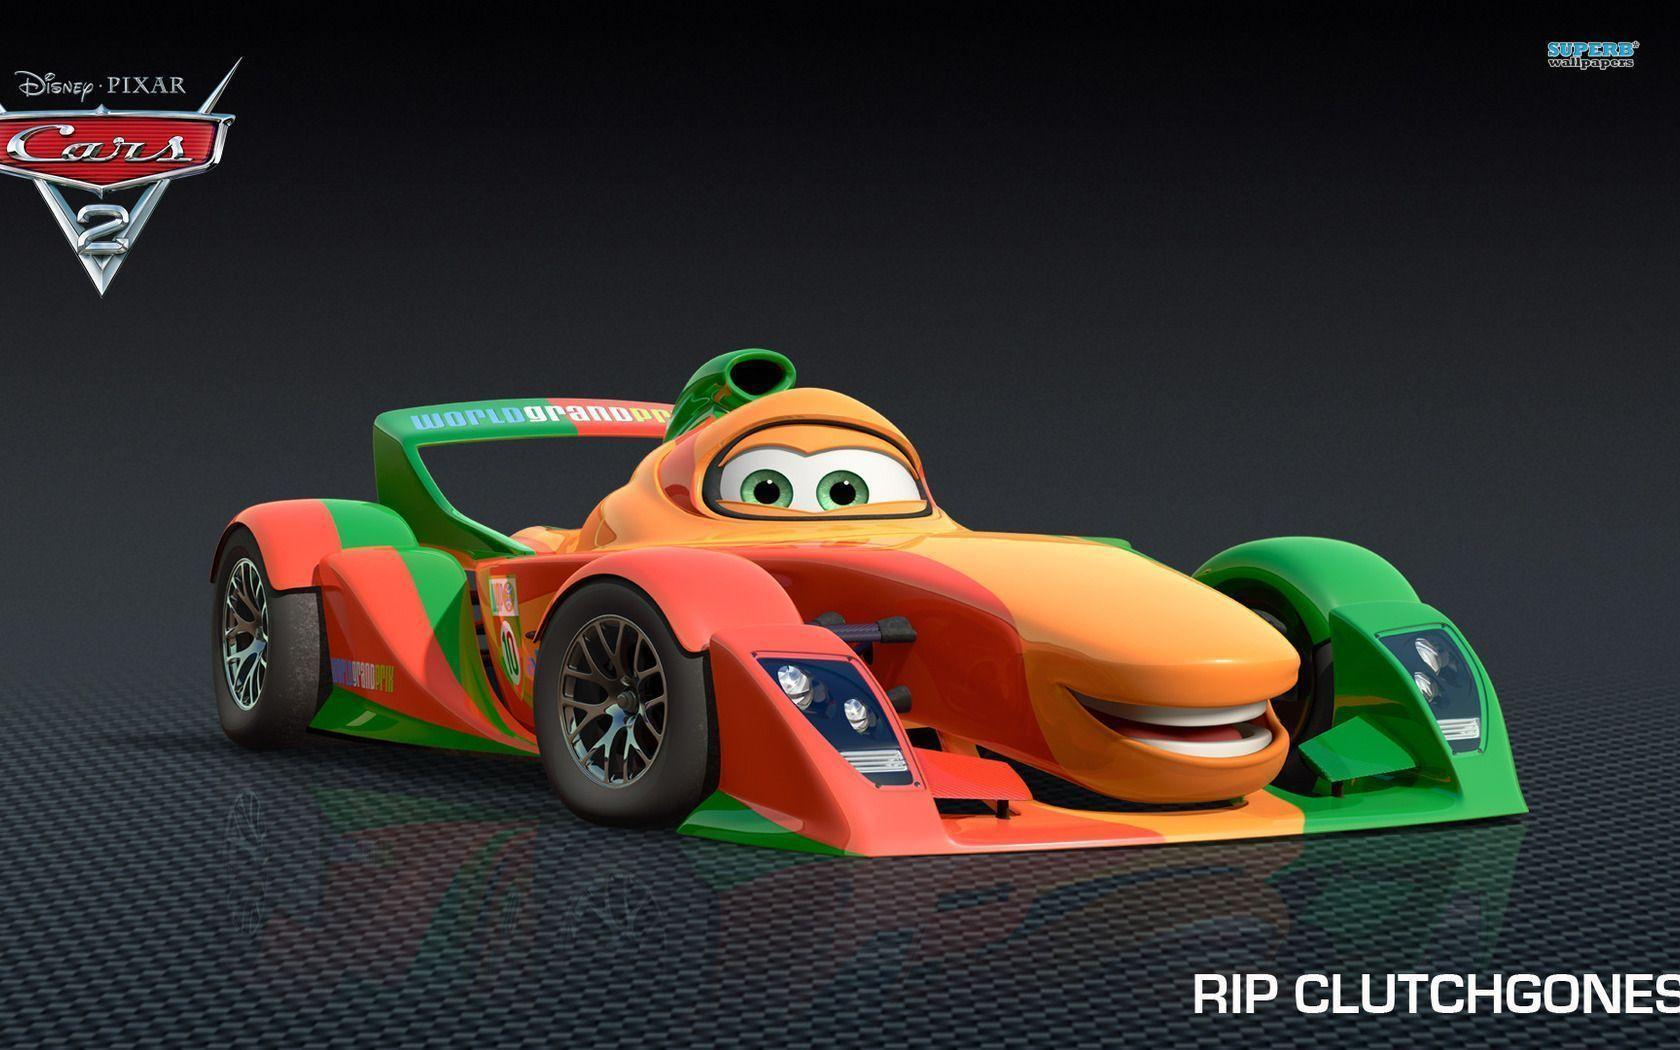 Rip Clutchgoneski - Cars 2 wallpaper - Cartoon wallpapers - #